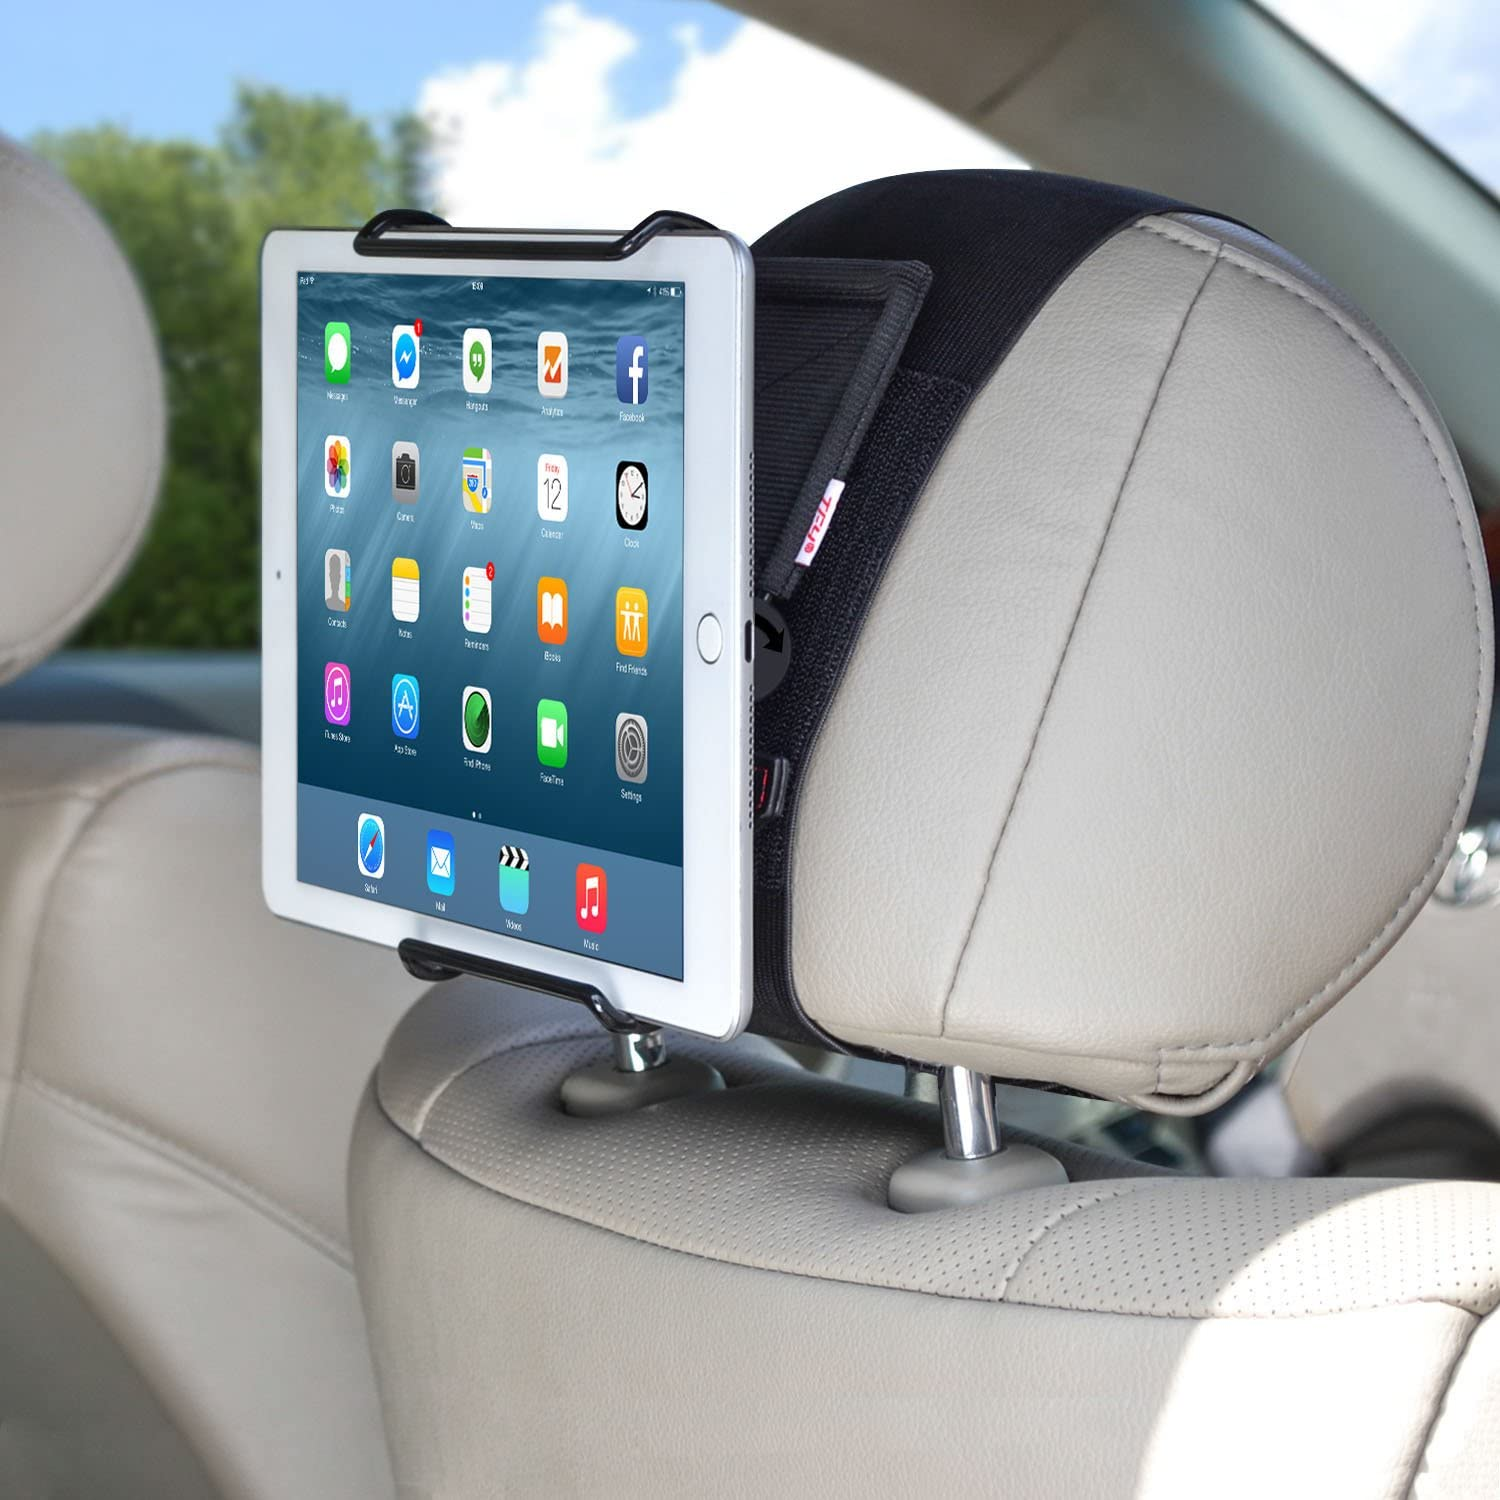 Amazon.com: TFY Universal Car Headrest Mount Holder with Angle- Adjustable  Holding Clamp for 6 - 12.9 Inch Tablets